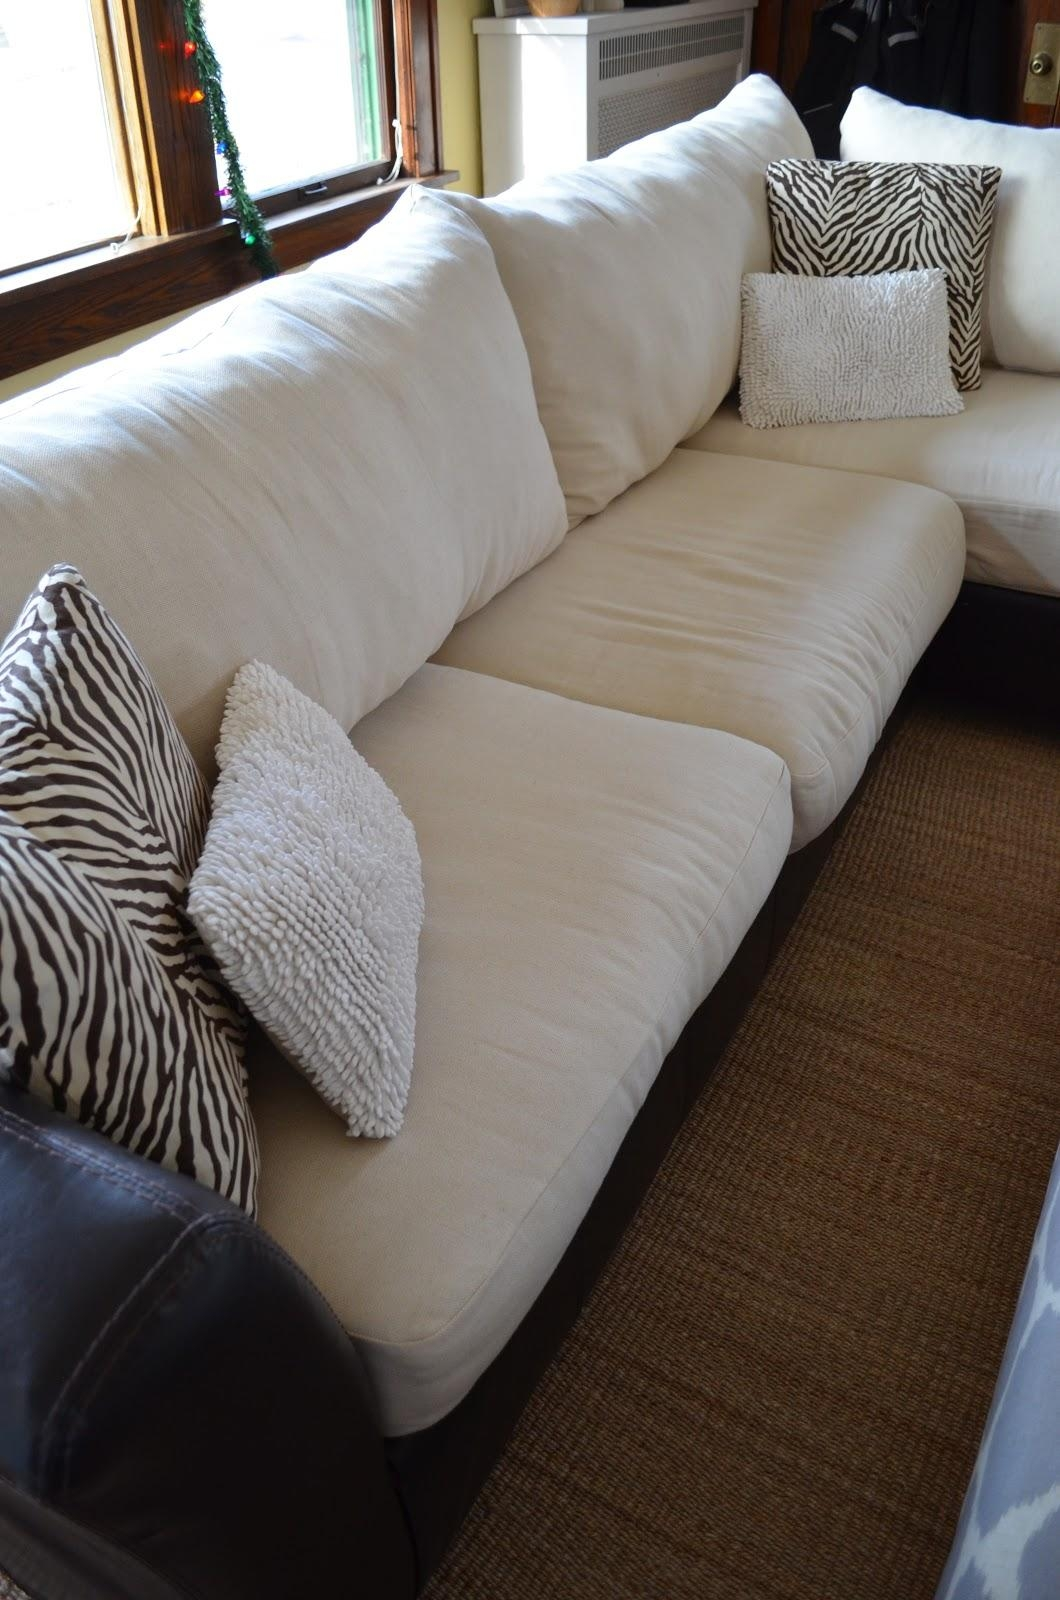 Inside Out Design: How To Make New Back Cushions For A Couch Intended For Sofa Cushions (Image 13 of 21)